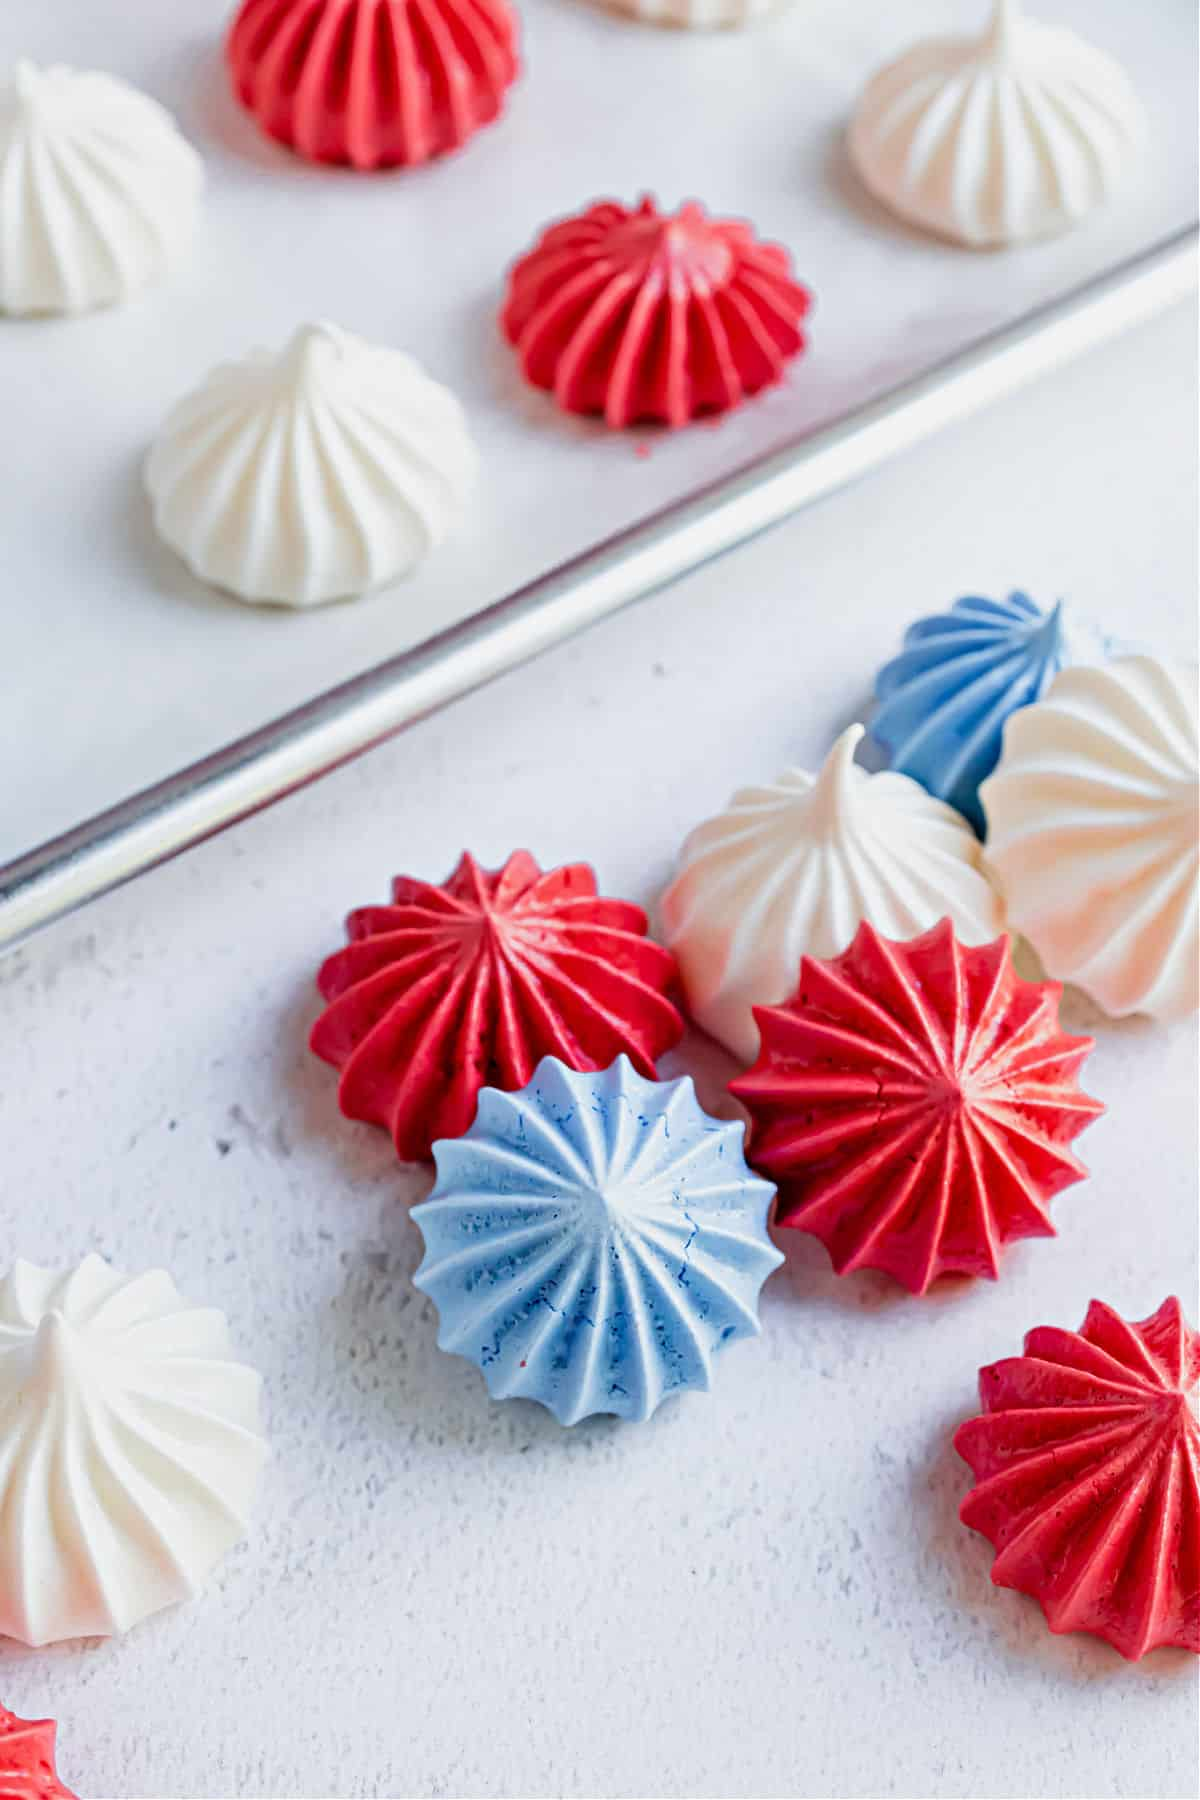 Meringue cookies with a 4th of july theme on baking sheet.